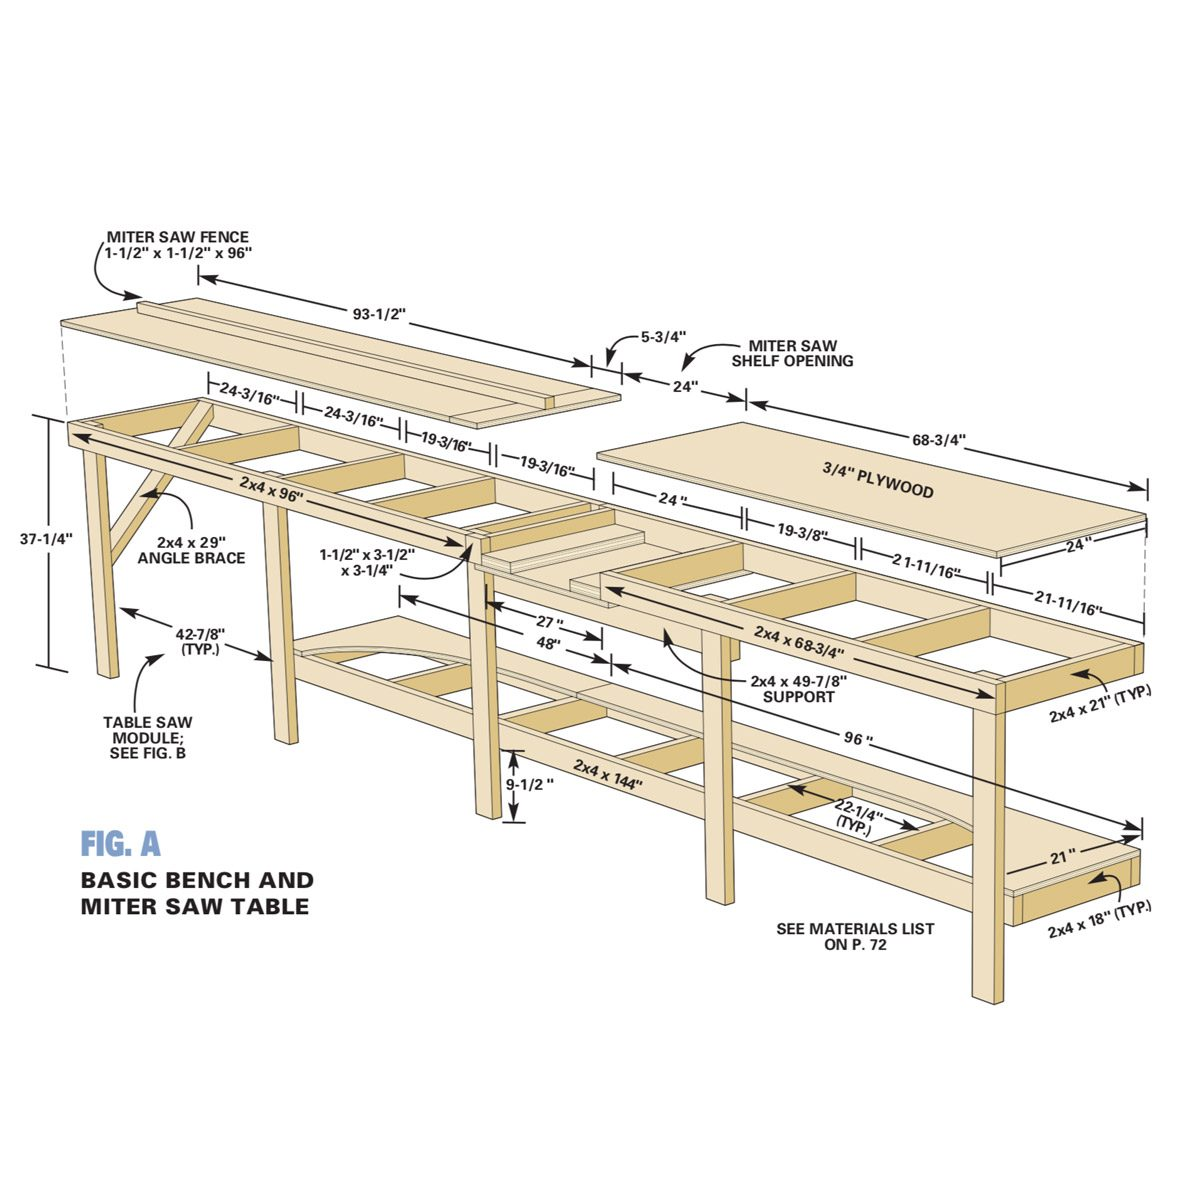 Modular Workbench Plans: How to Build a Modular Workbench